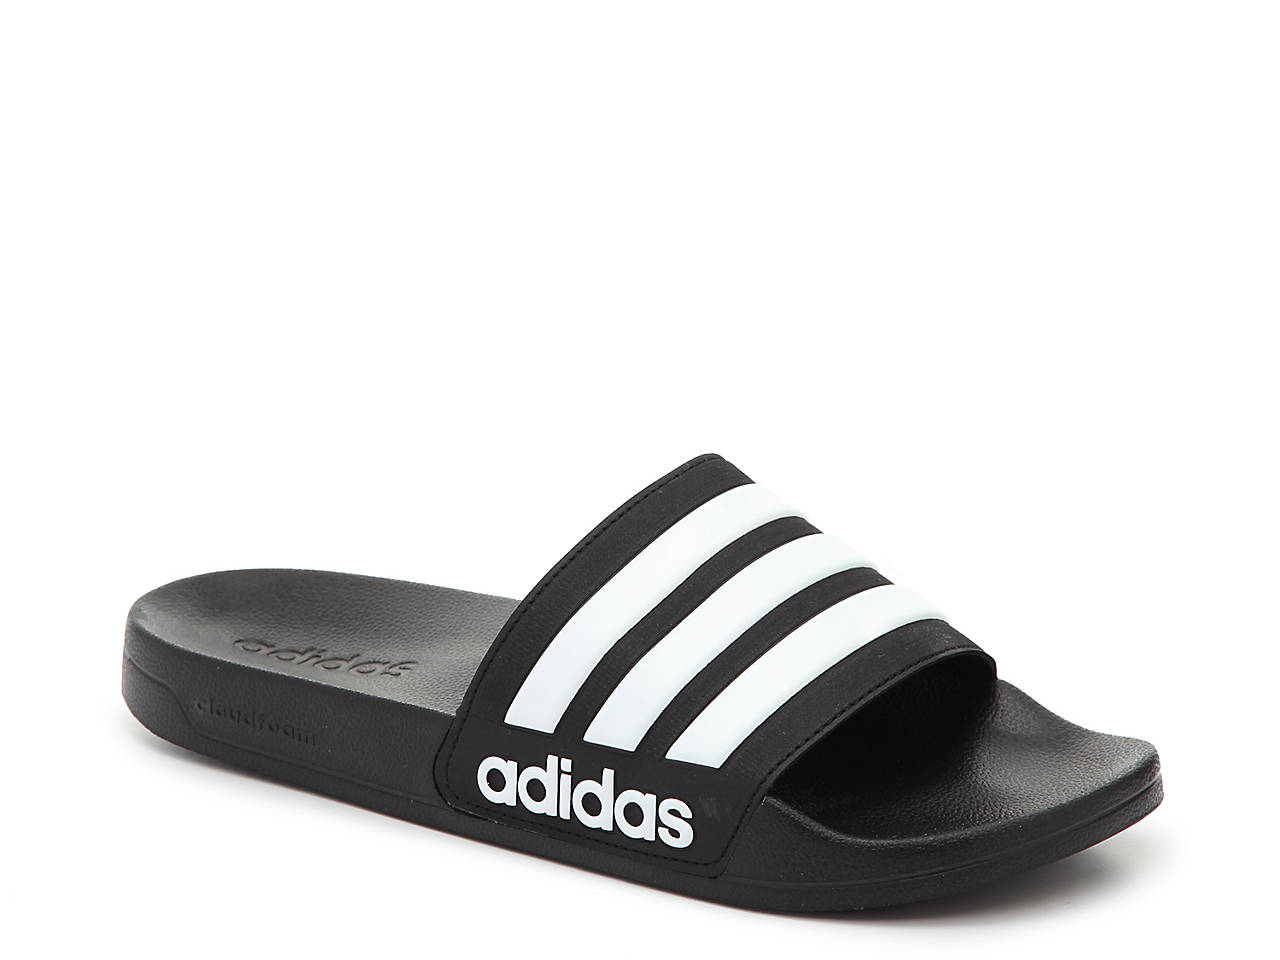 49ec26153e37 adidas Adilette Shower Slide Sandal - Men s Men s Shoes